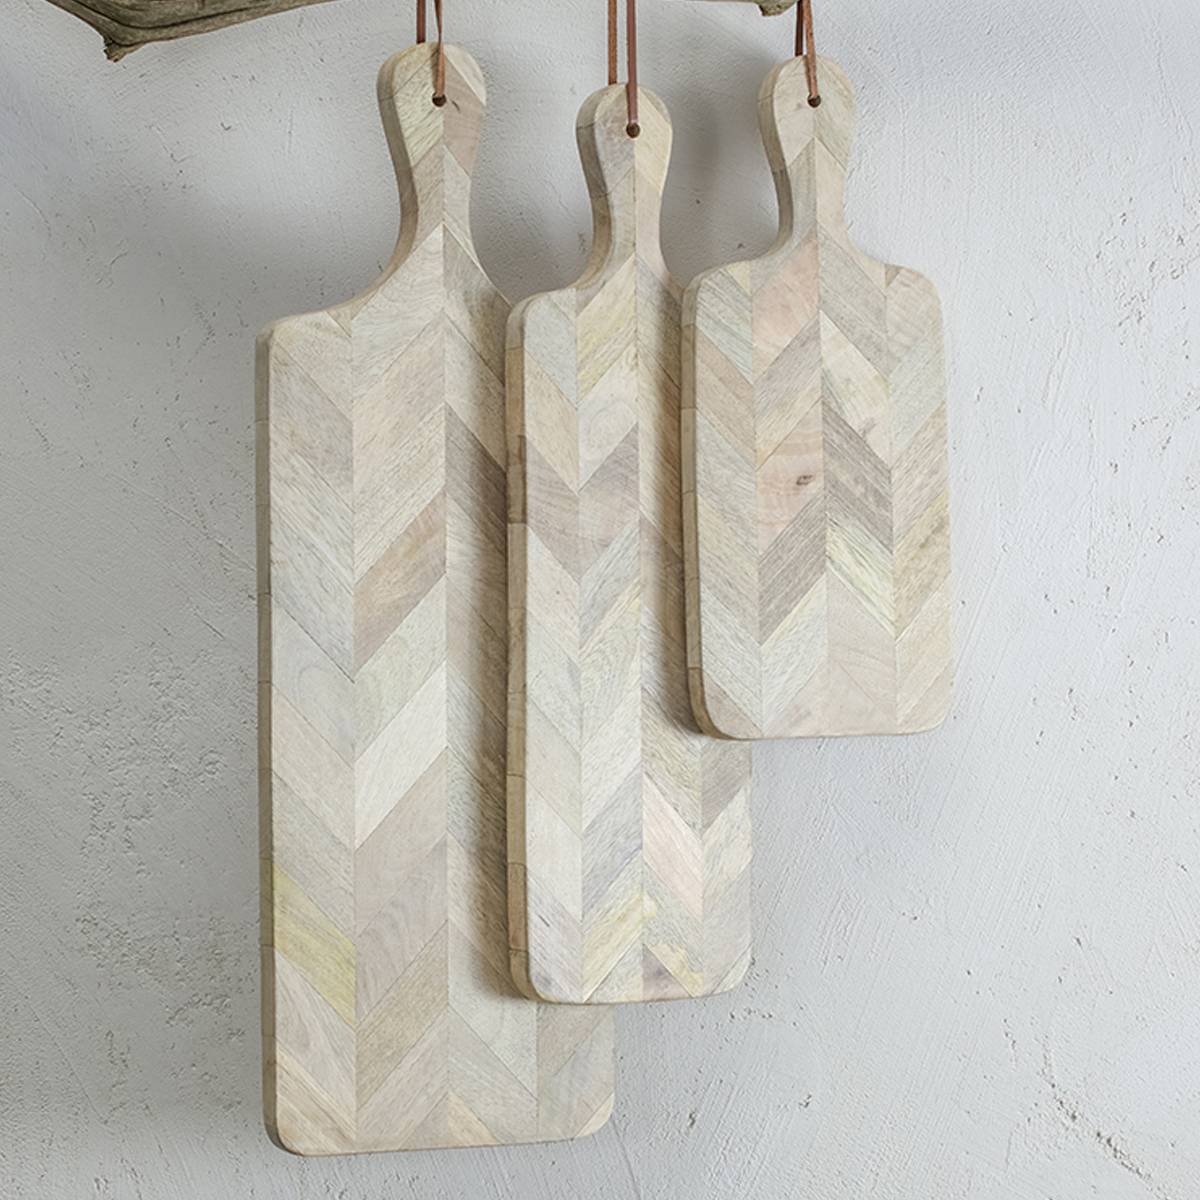 mango-wood-chopping-boards-nkuku